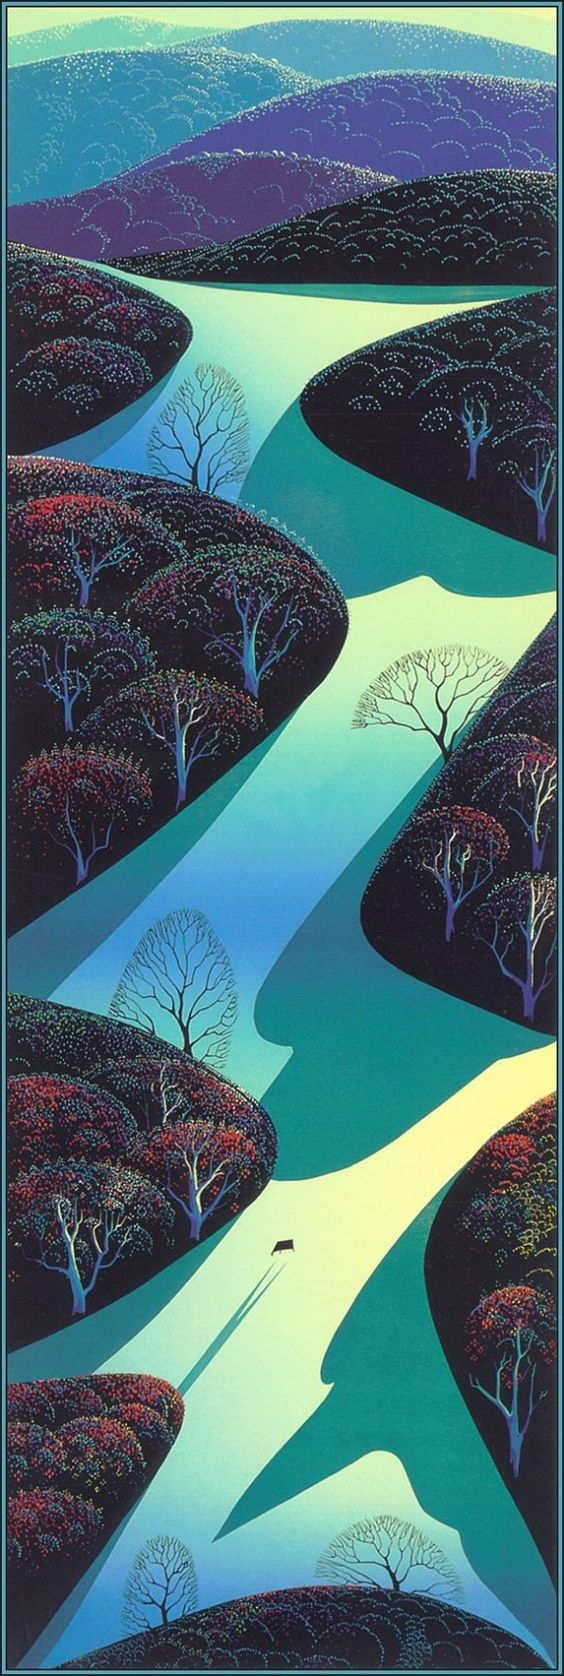 Eyvind Earle (1916-2000) American artist and illustrator. By robotboy66 on Flickr.: